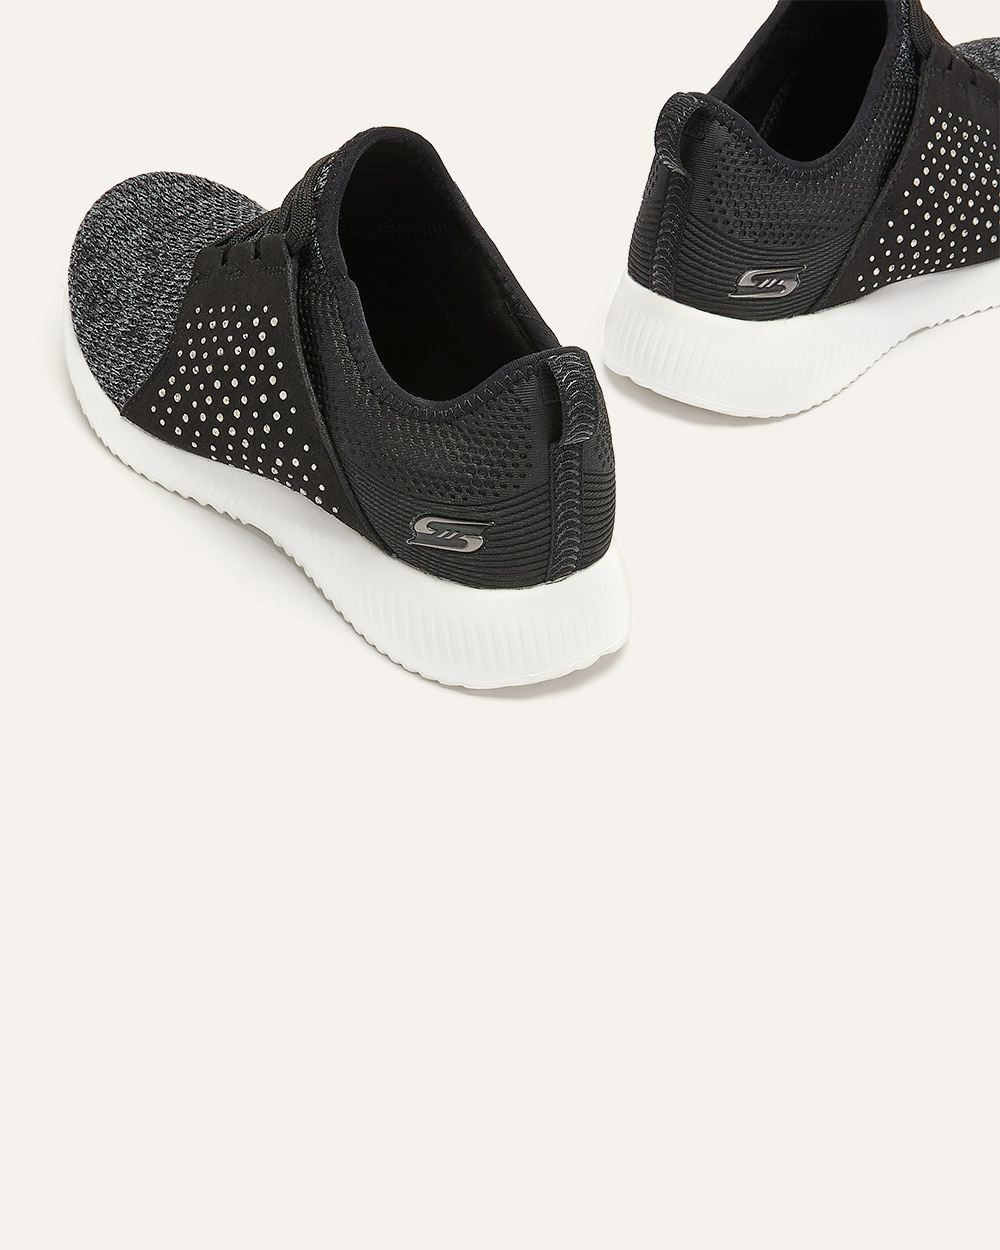 Slip-On Sneakers with Laces and Rhinestones - Skechers